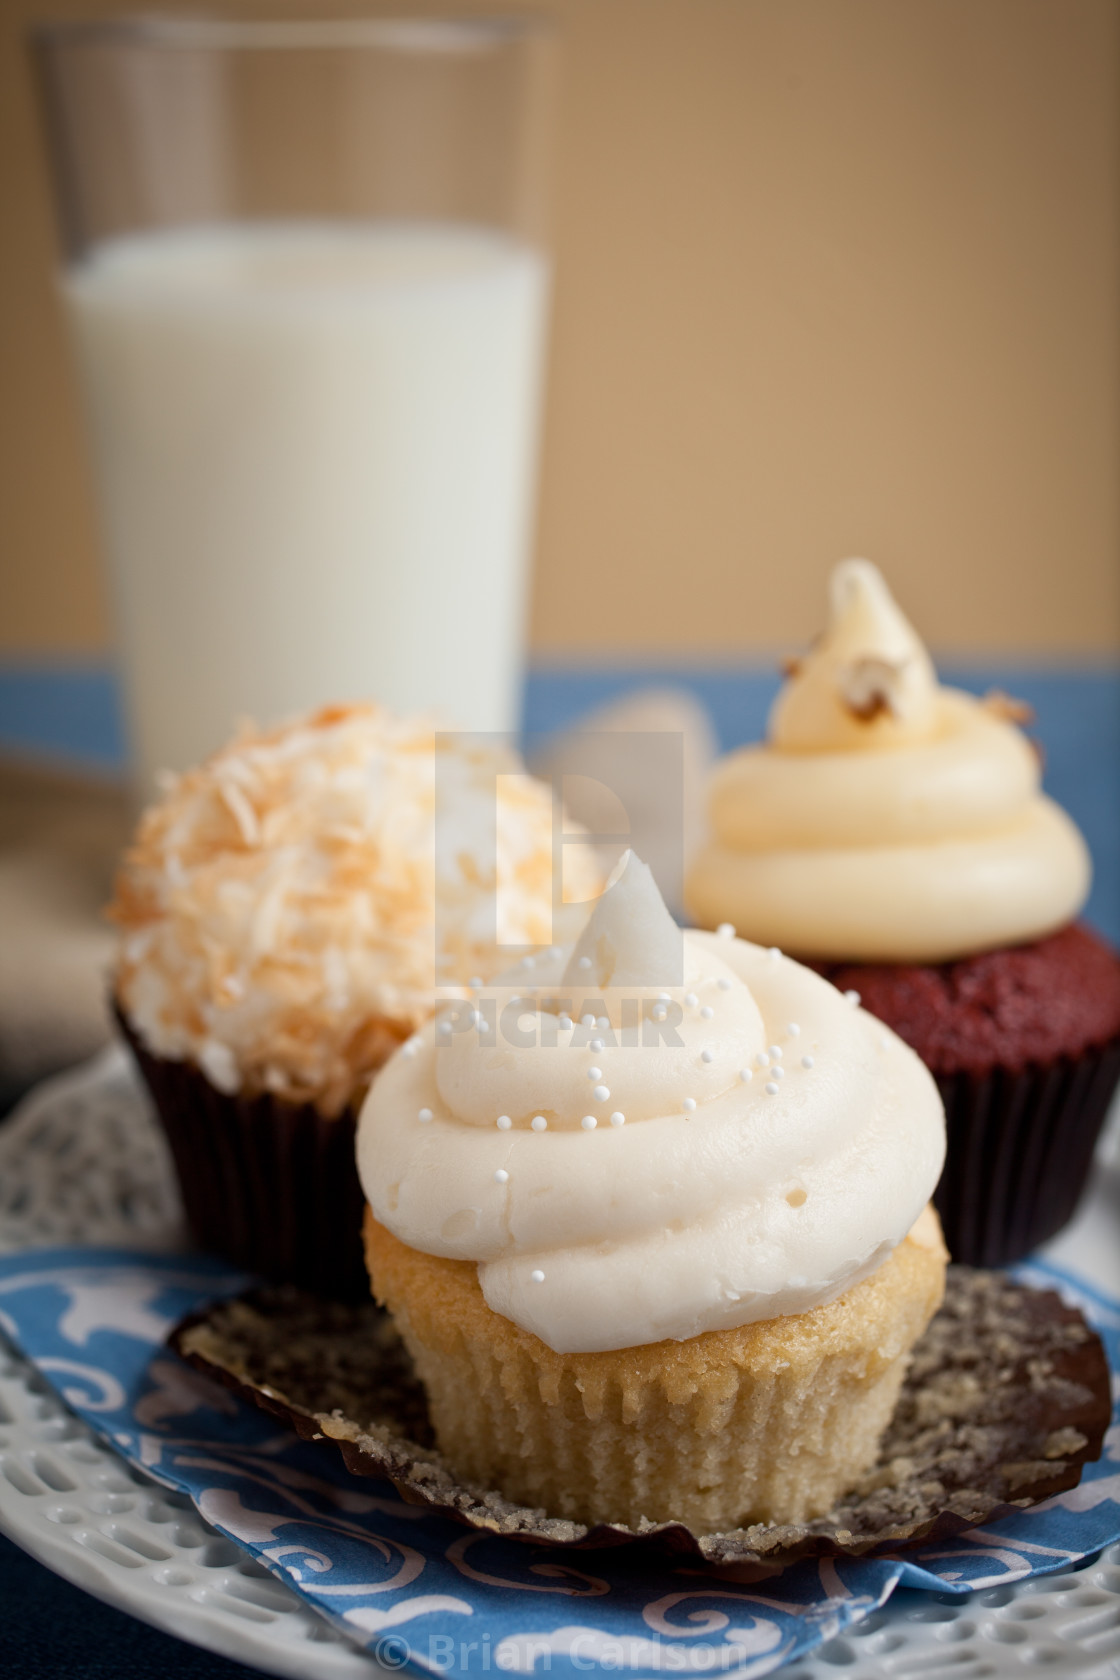 """cupcakes on plate"" stock image"